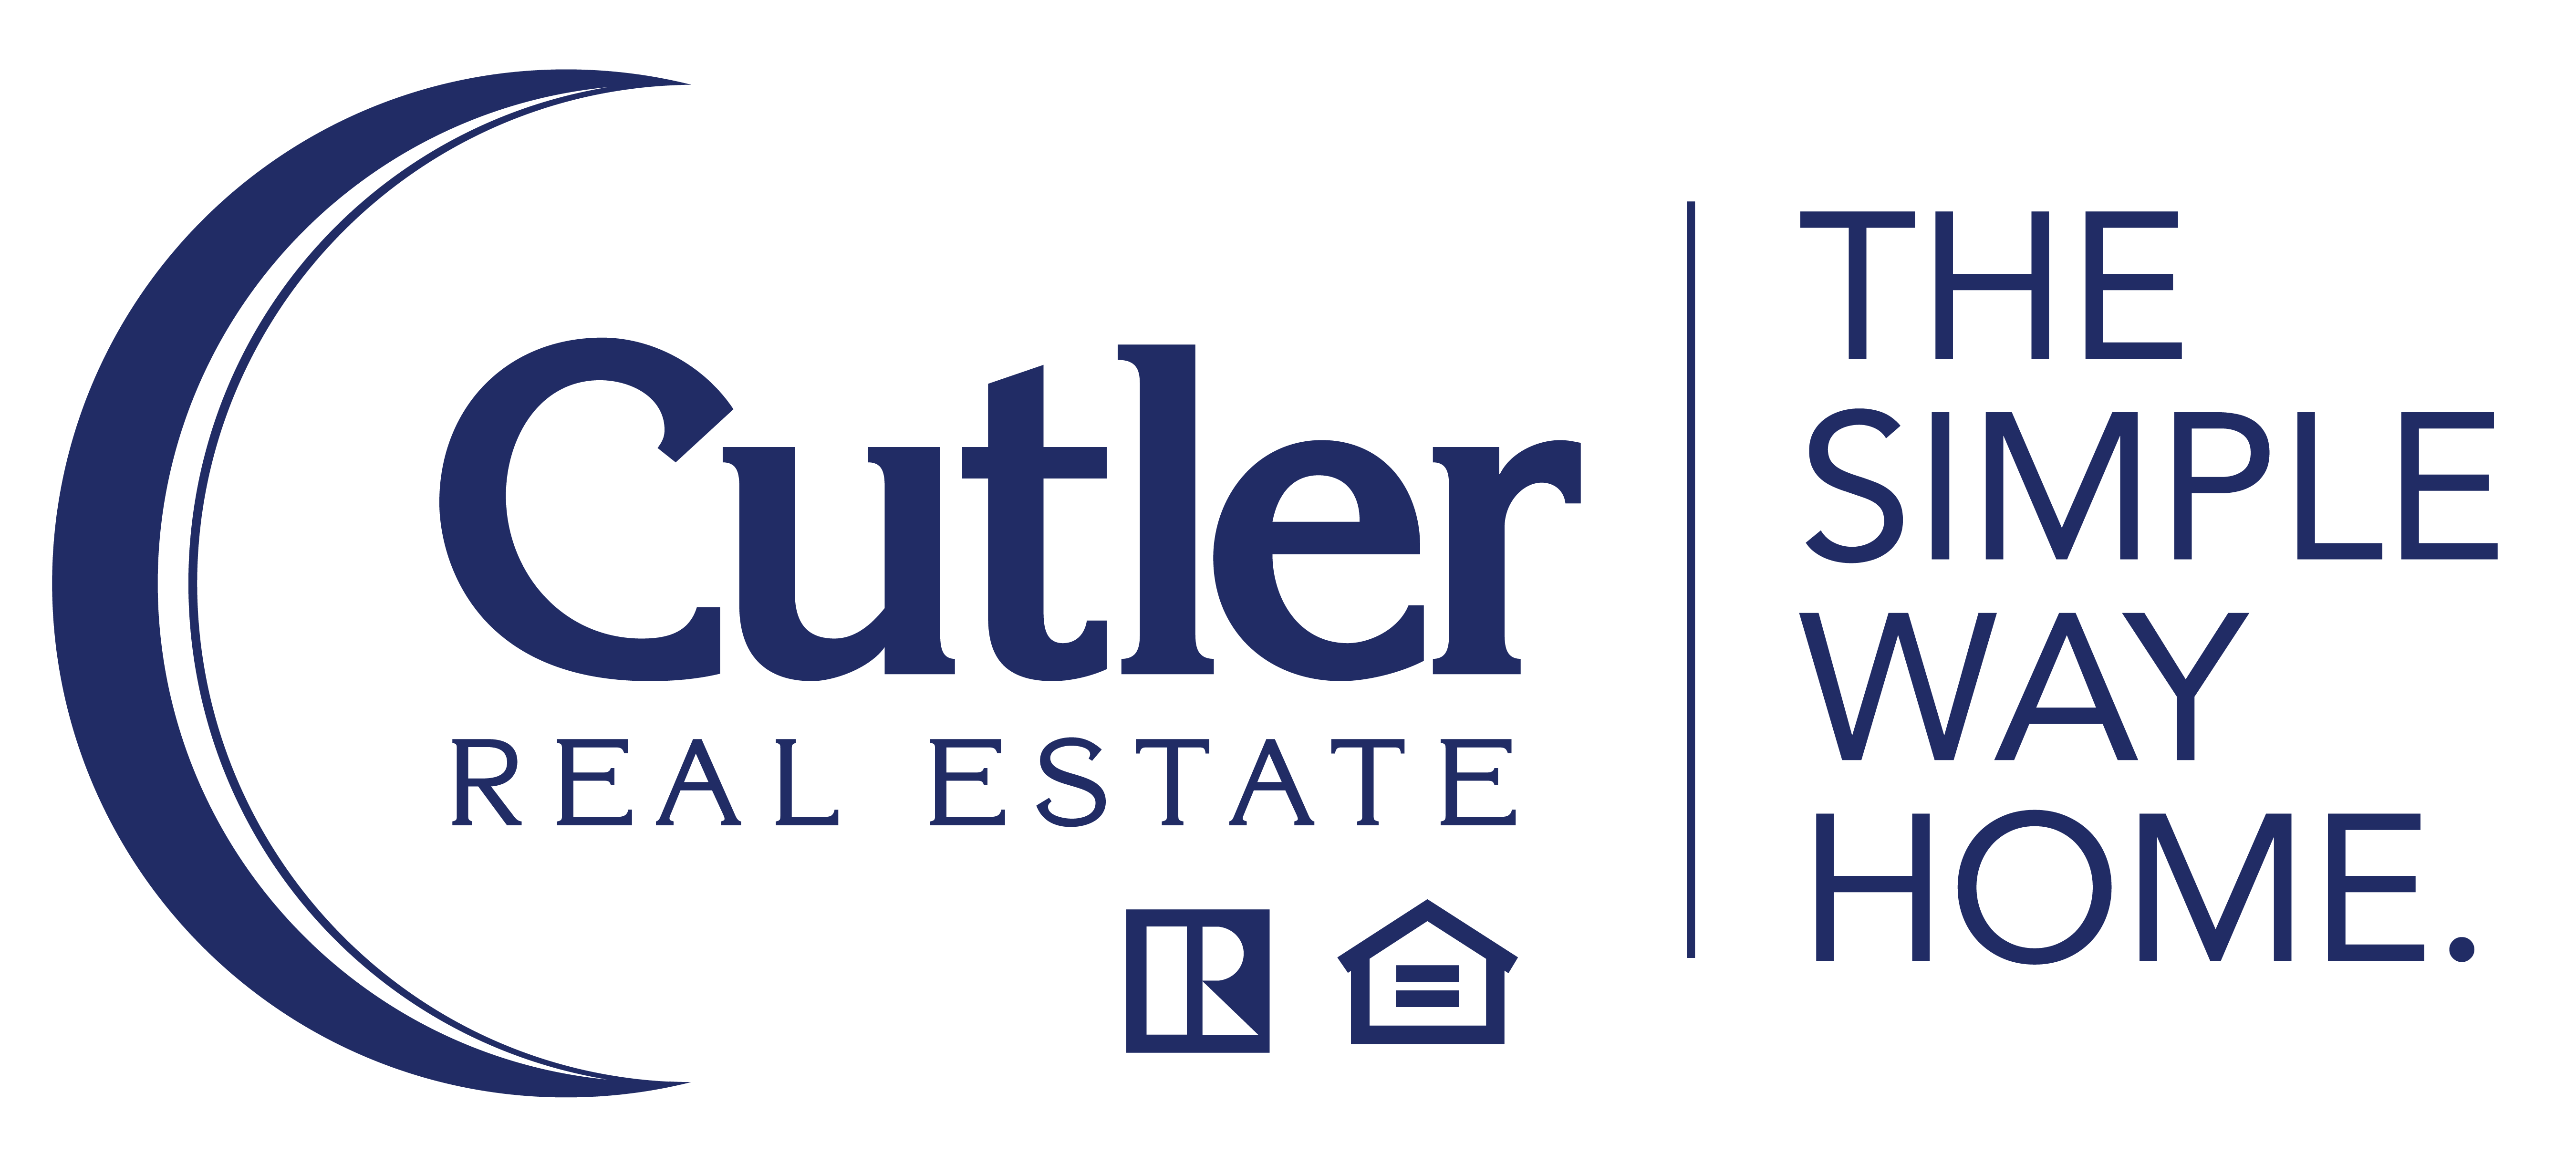 Cubb1es Team - Cutler Real Estate